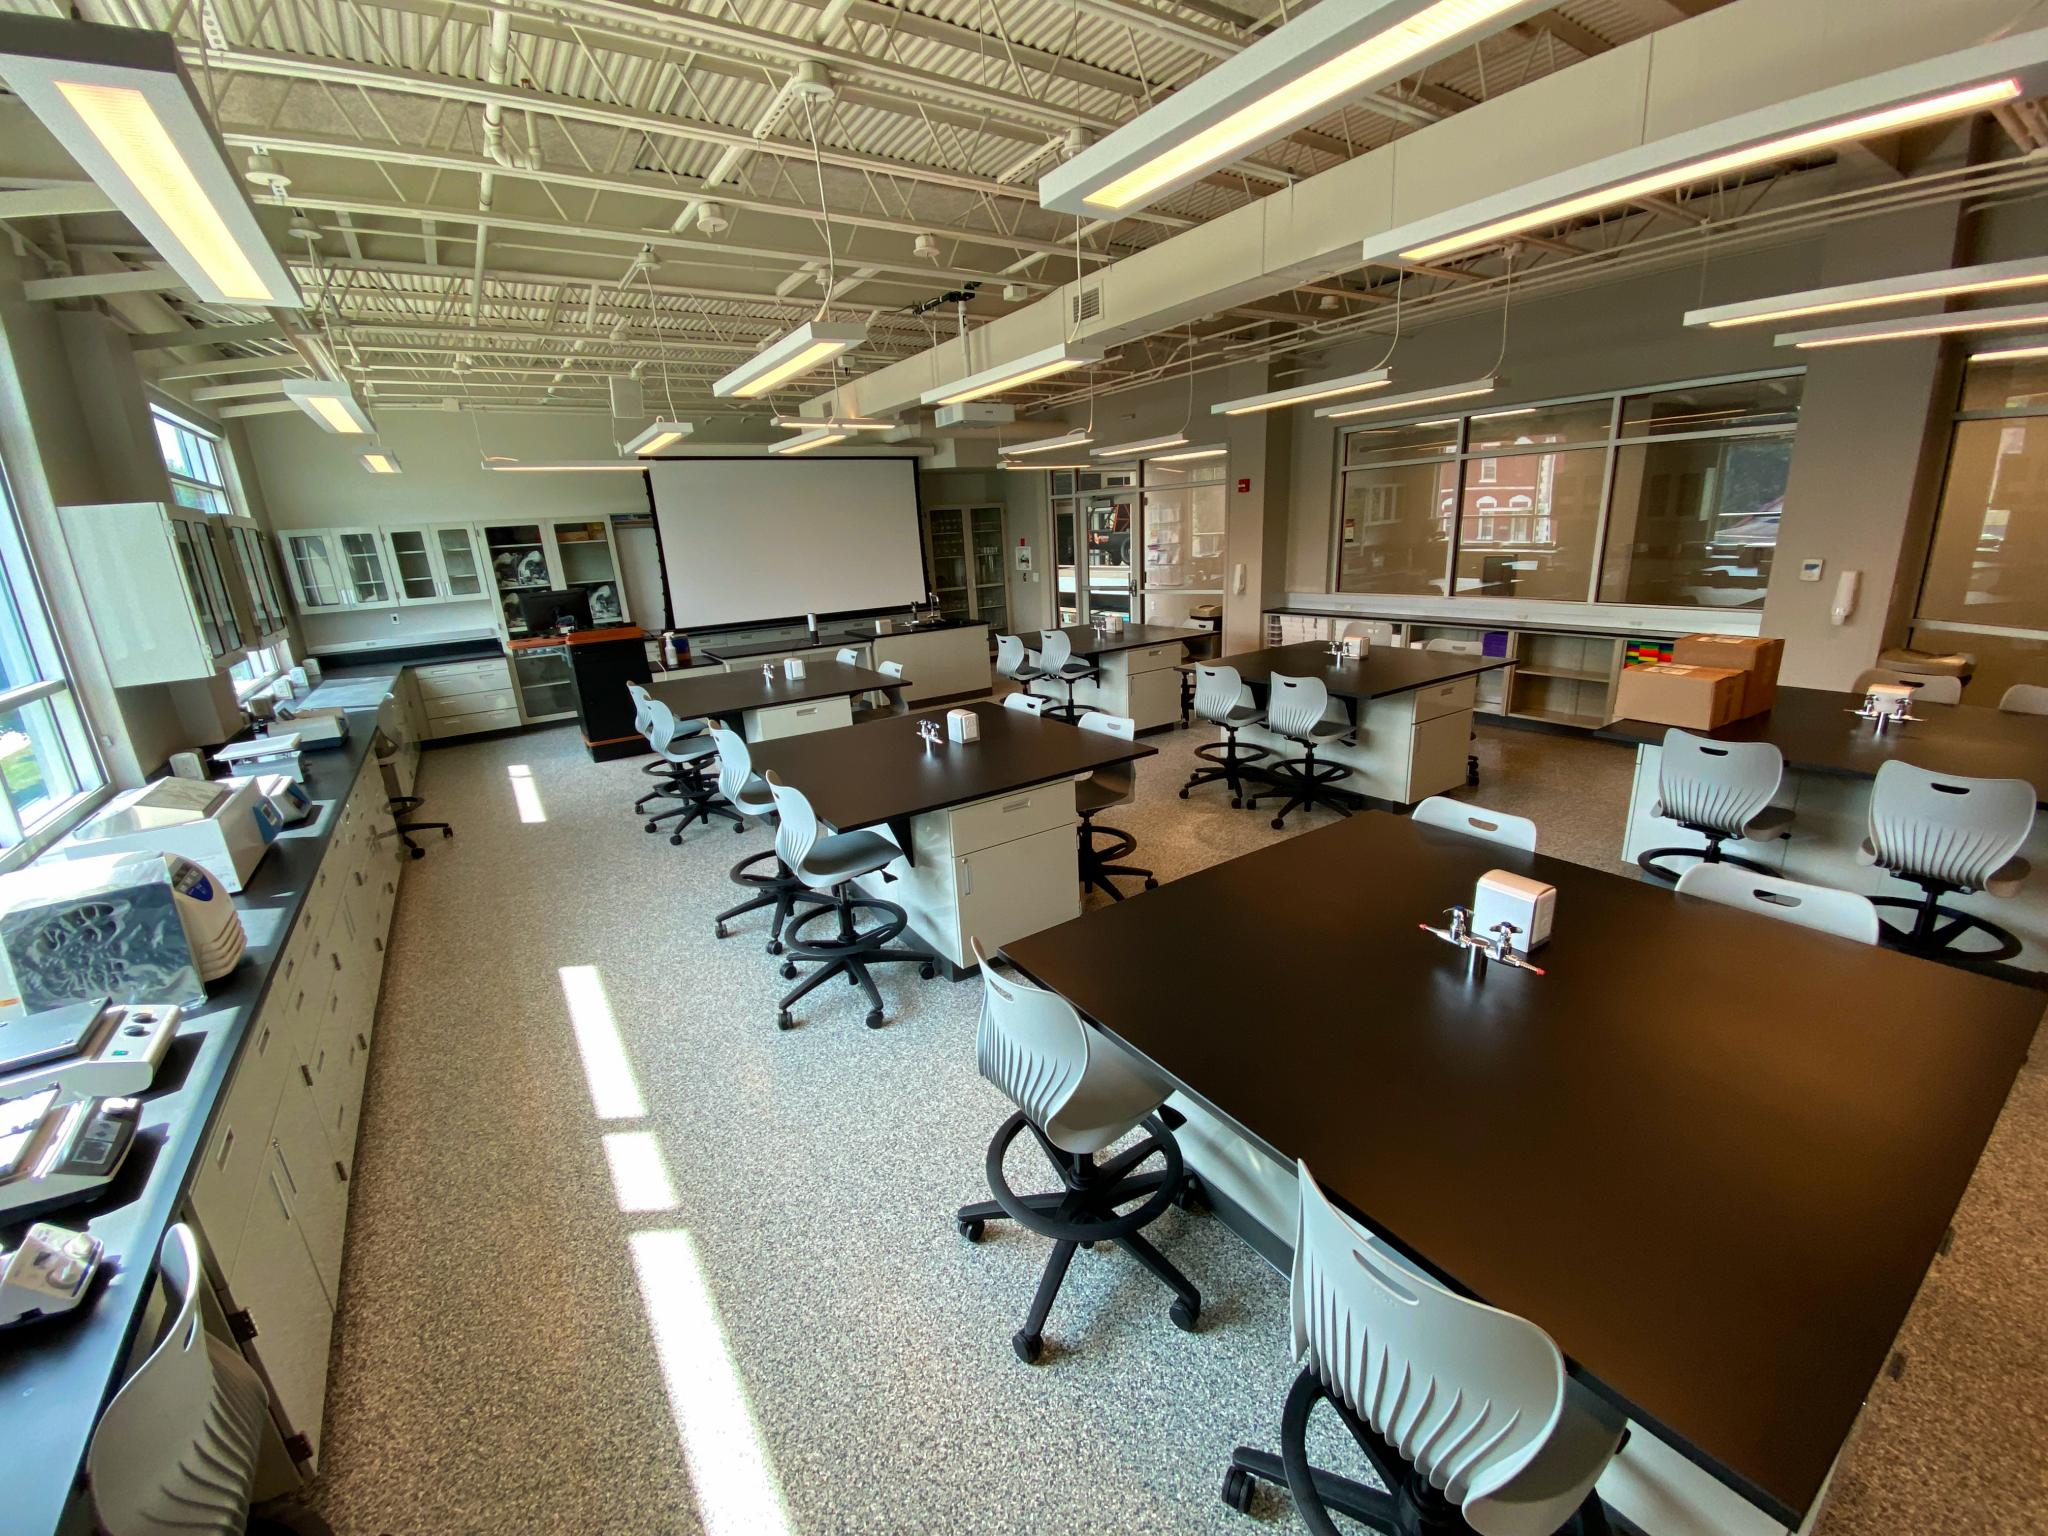 image of science lab space with countertops